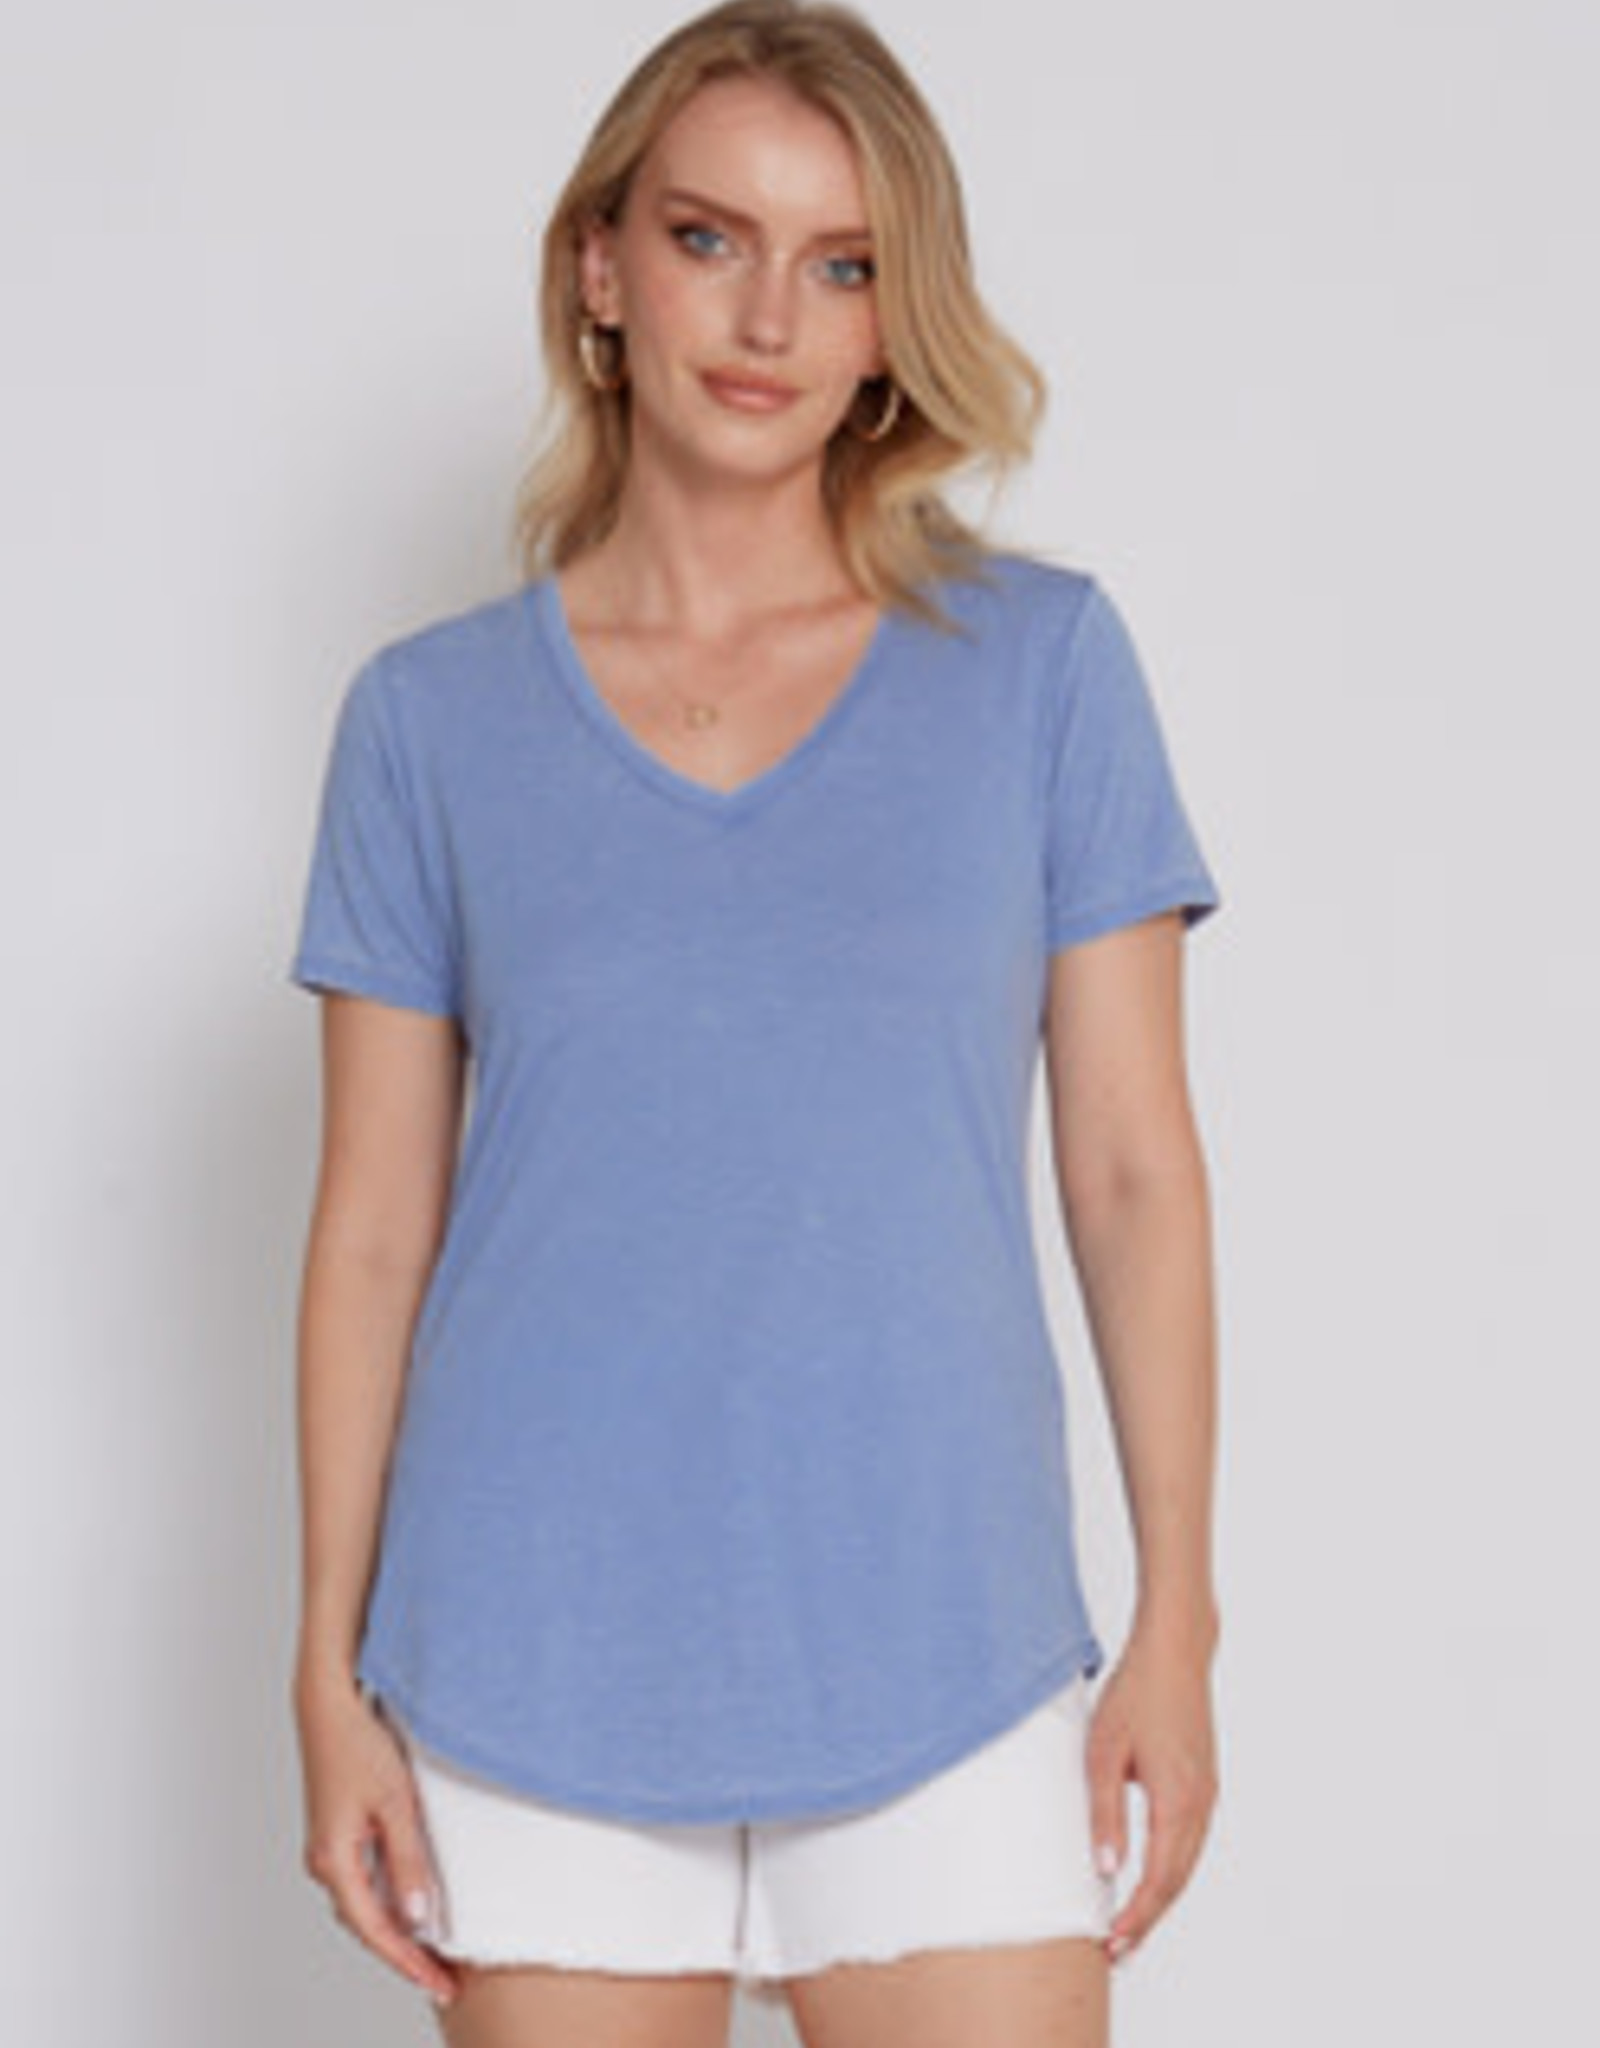 Another Love AL - Megan T-Shirt (6 colors)